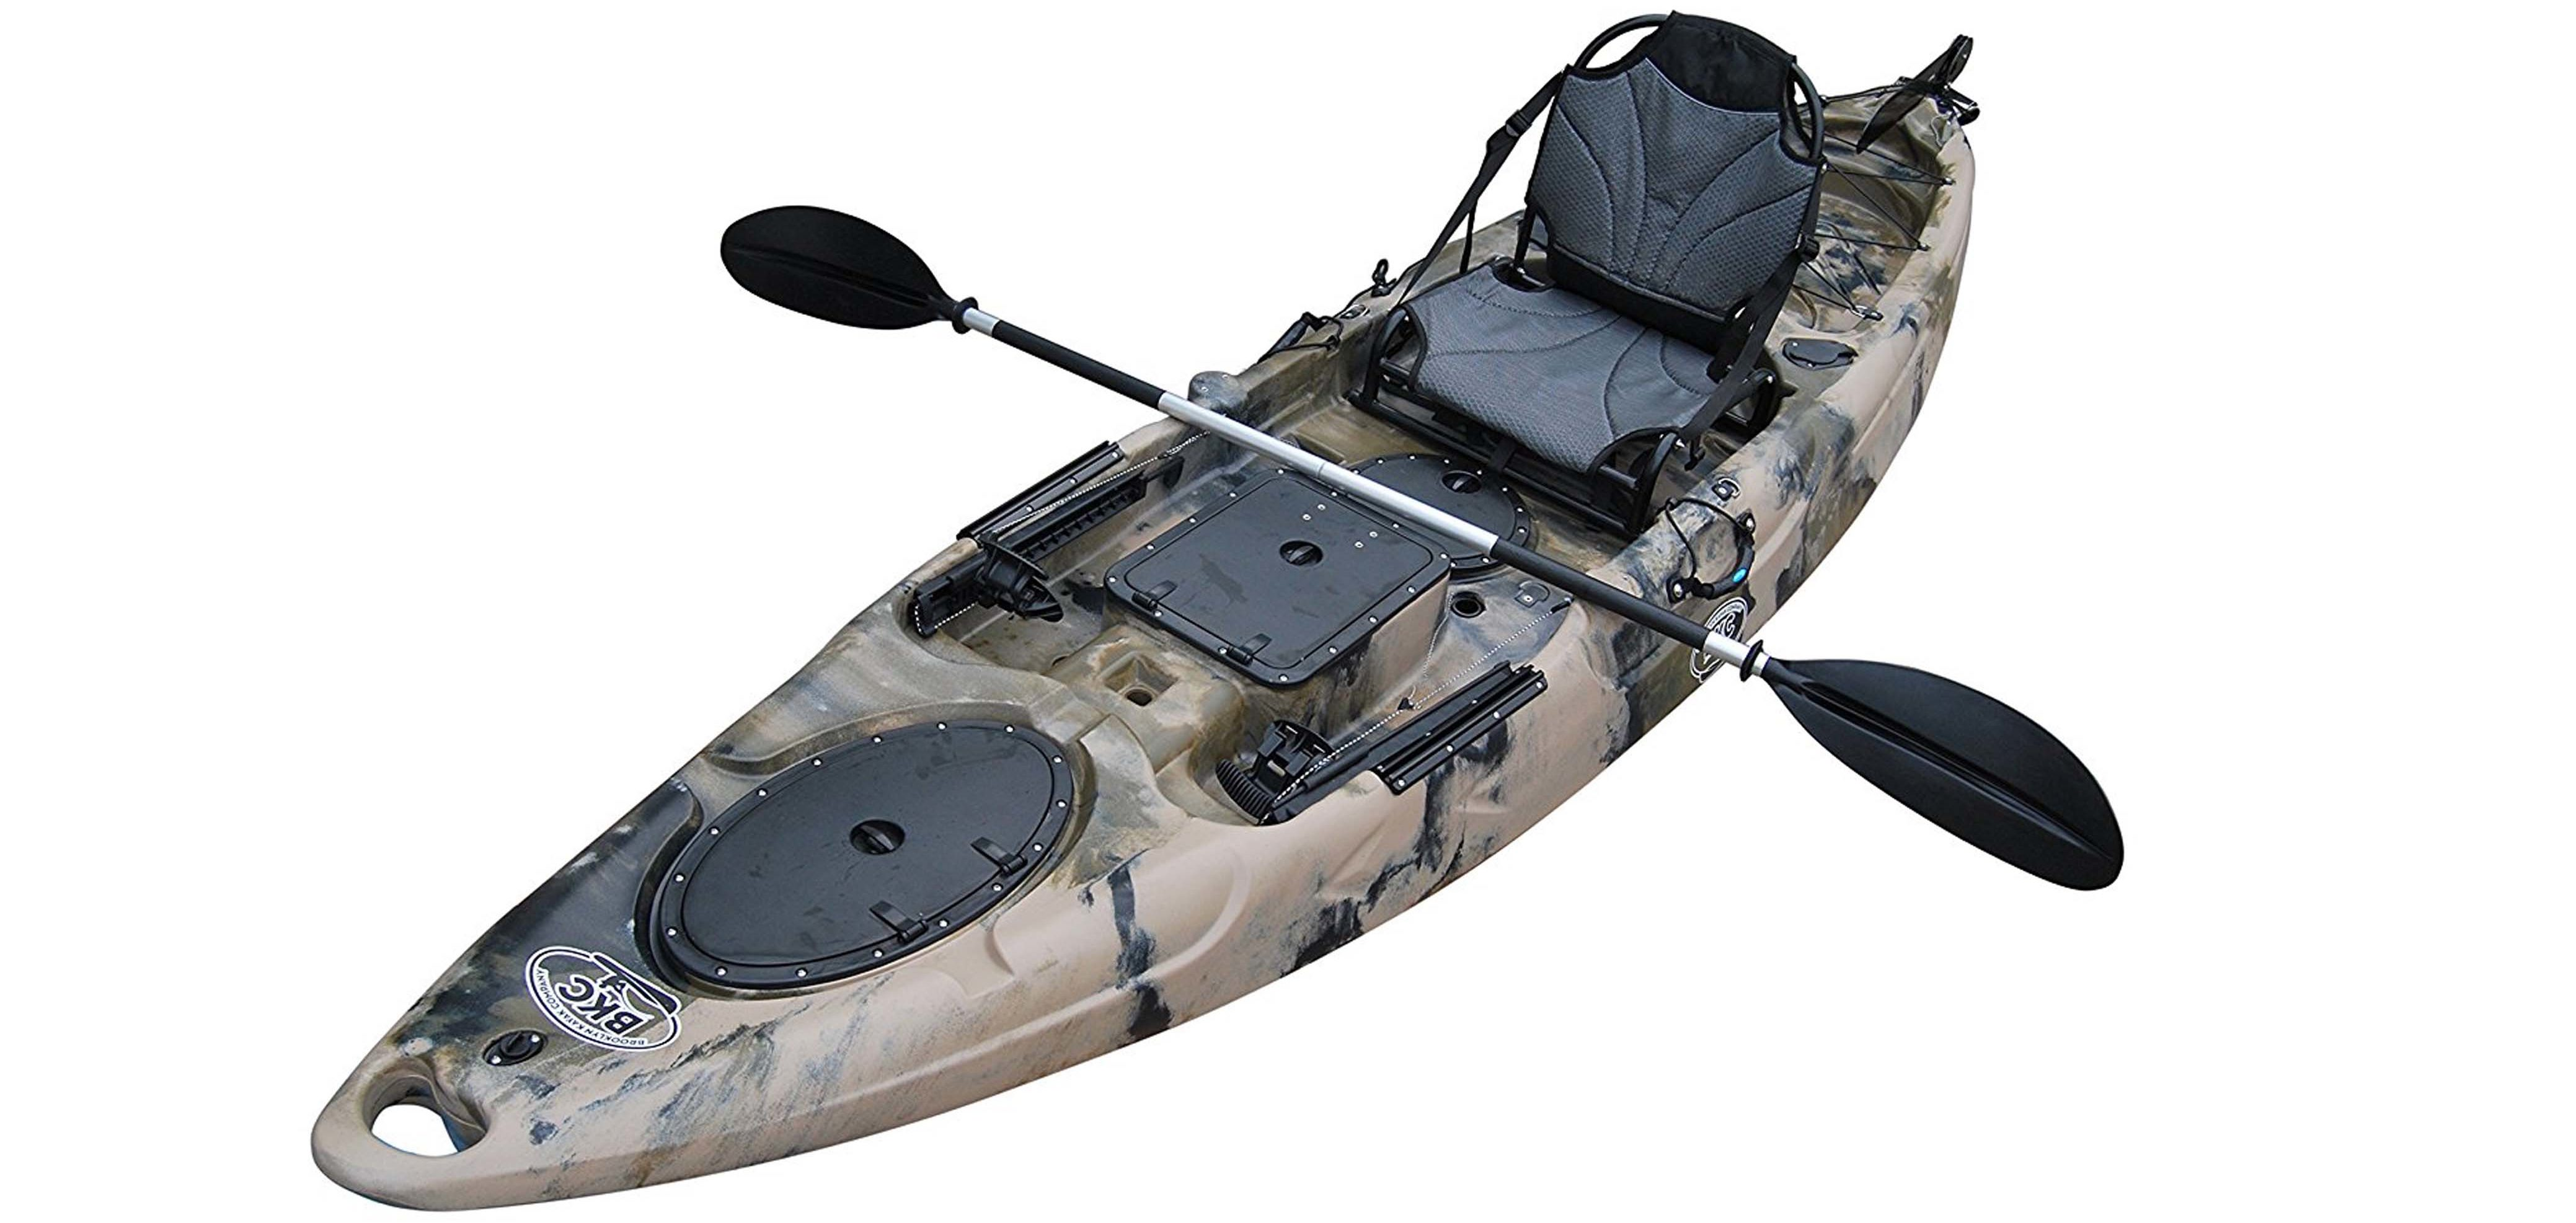 Brooklyn Kayak Company BKC UH-220 11-Foot 6-Inch Angler Sit on Top Fishing Kayak with PaddlesBrooklyn Kayak Company BKC UH-220 11-Foot 6-Inch Angler Sit on Top Fishing Kayak with Paddles